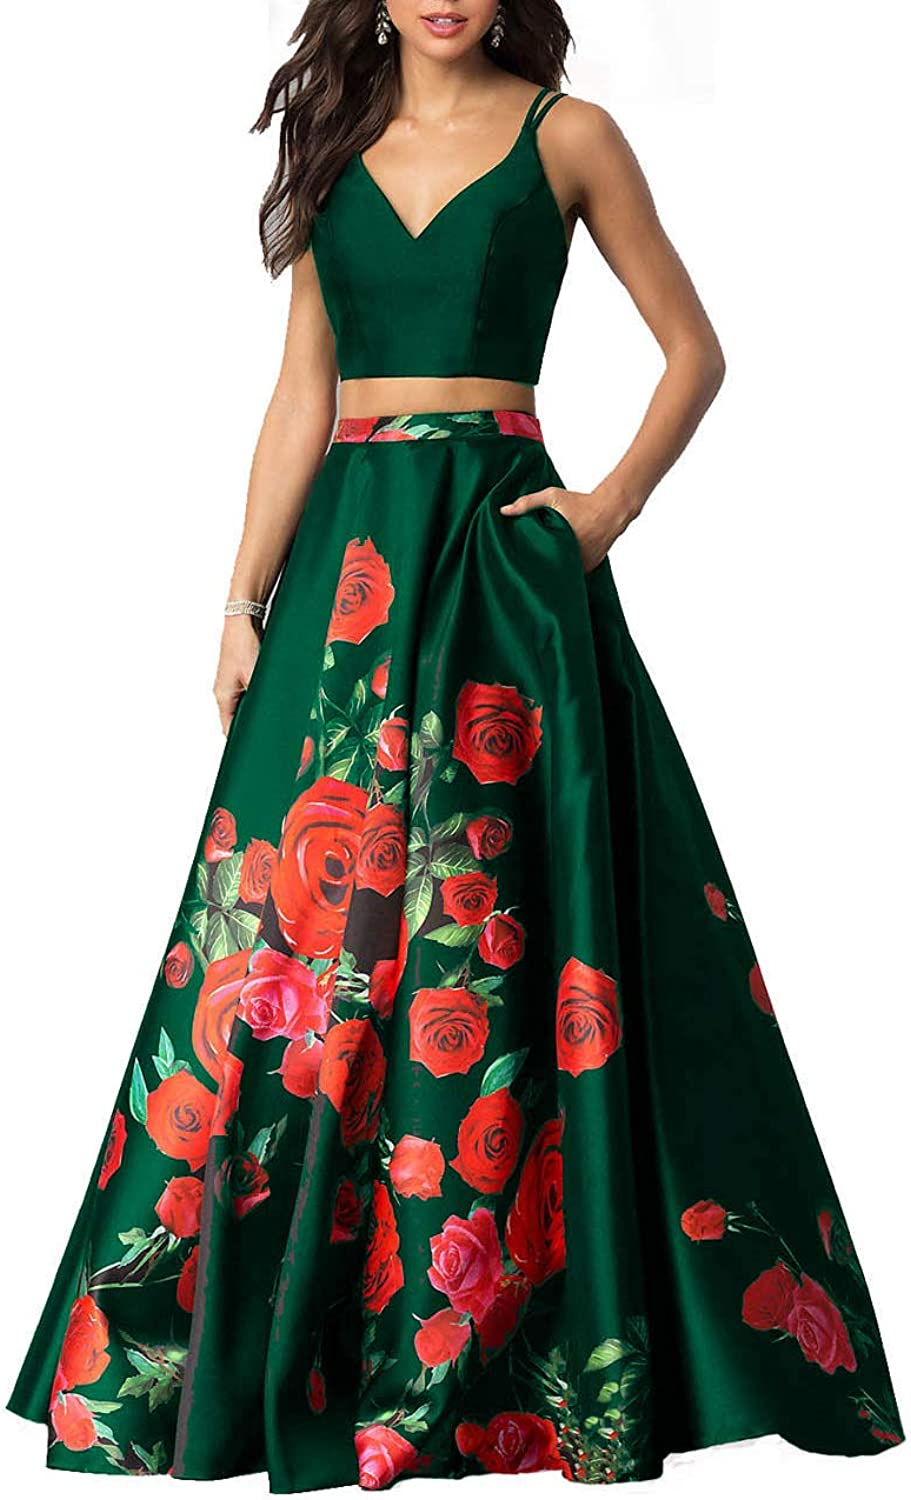 Sulidi Womens 2 Piece Floral Printed Prom Dresses with Pockets Long 2019 Formal Evening Ball Gown C157